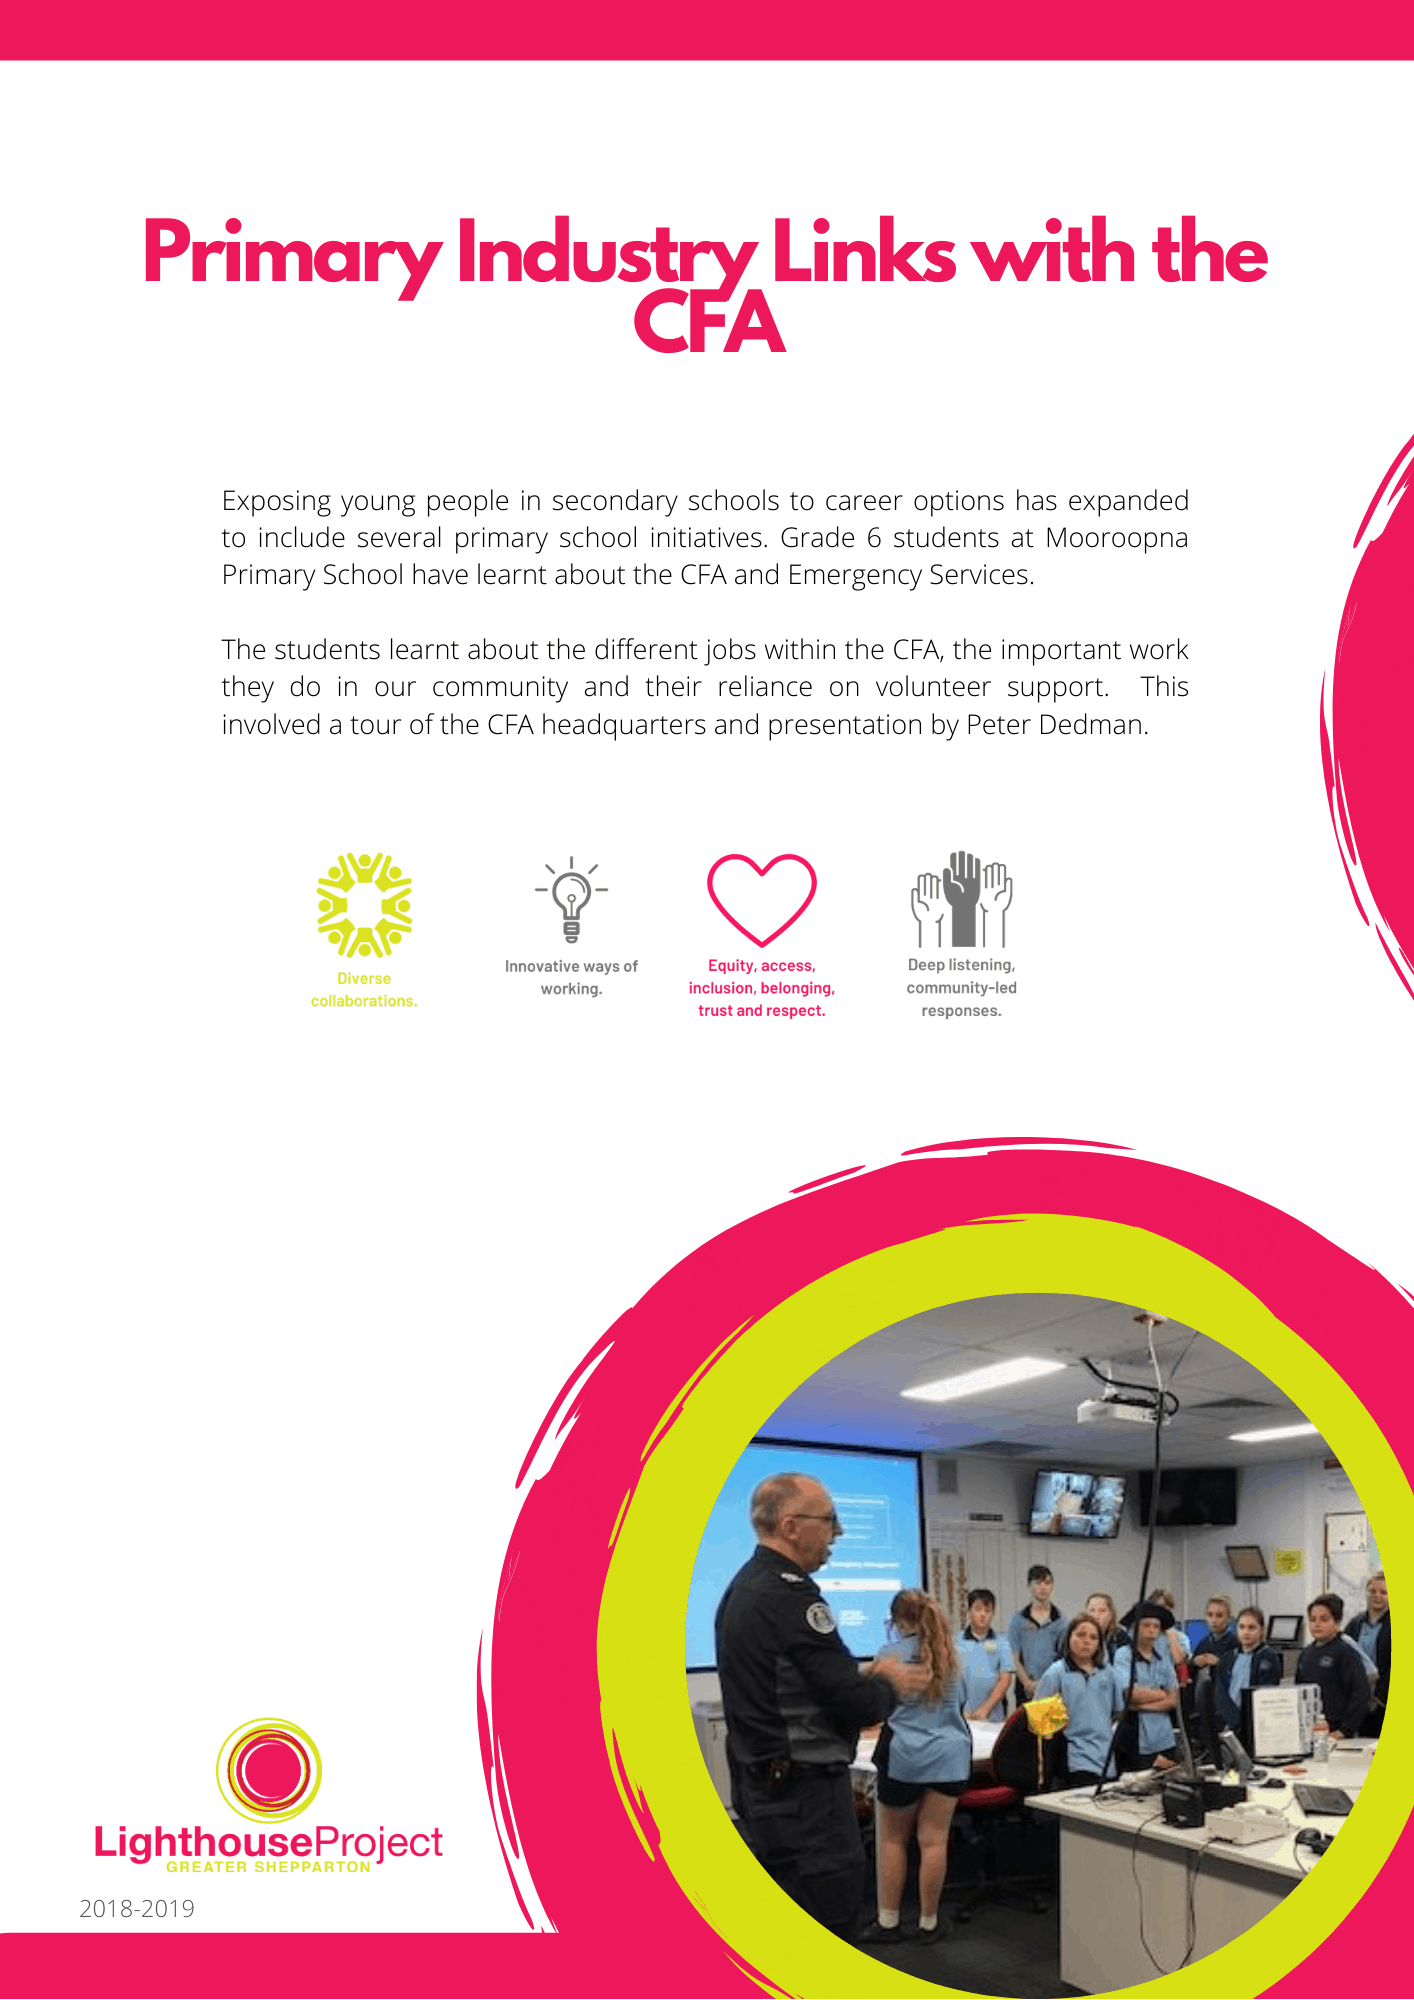 Primary industry links with the CFA image